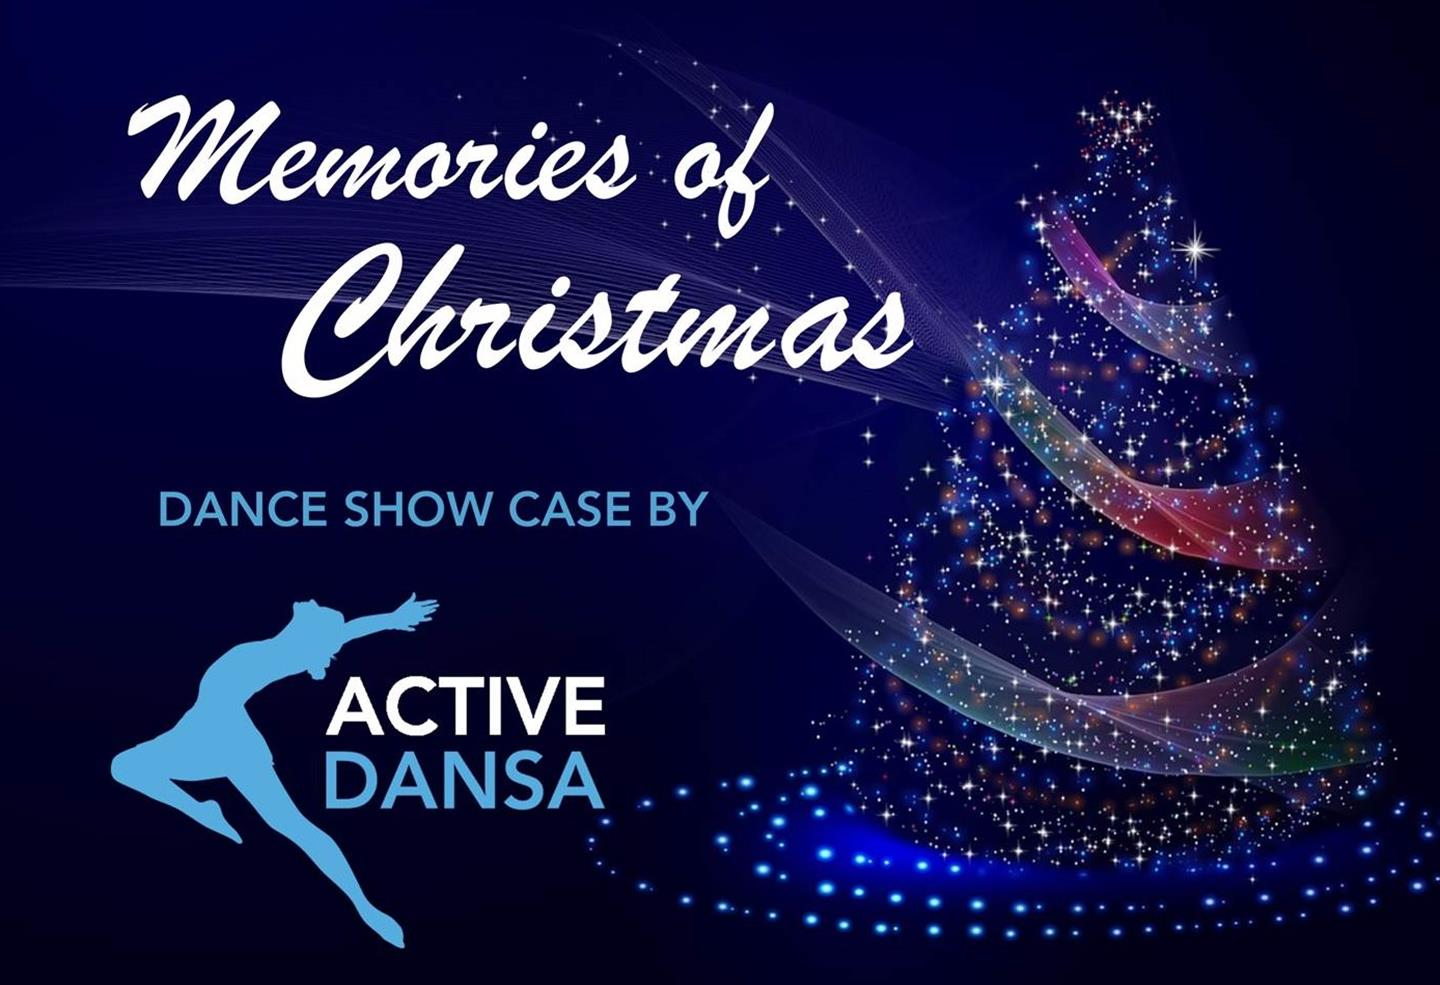 Memories of Christmas Active Dansa Show